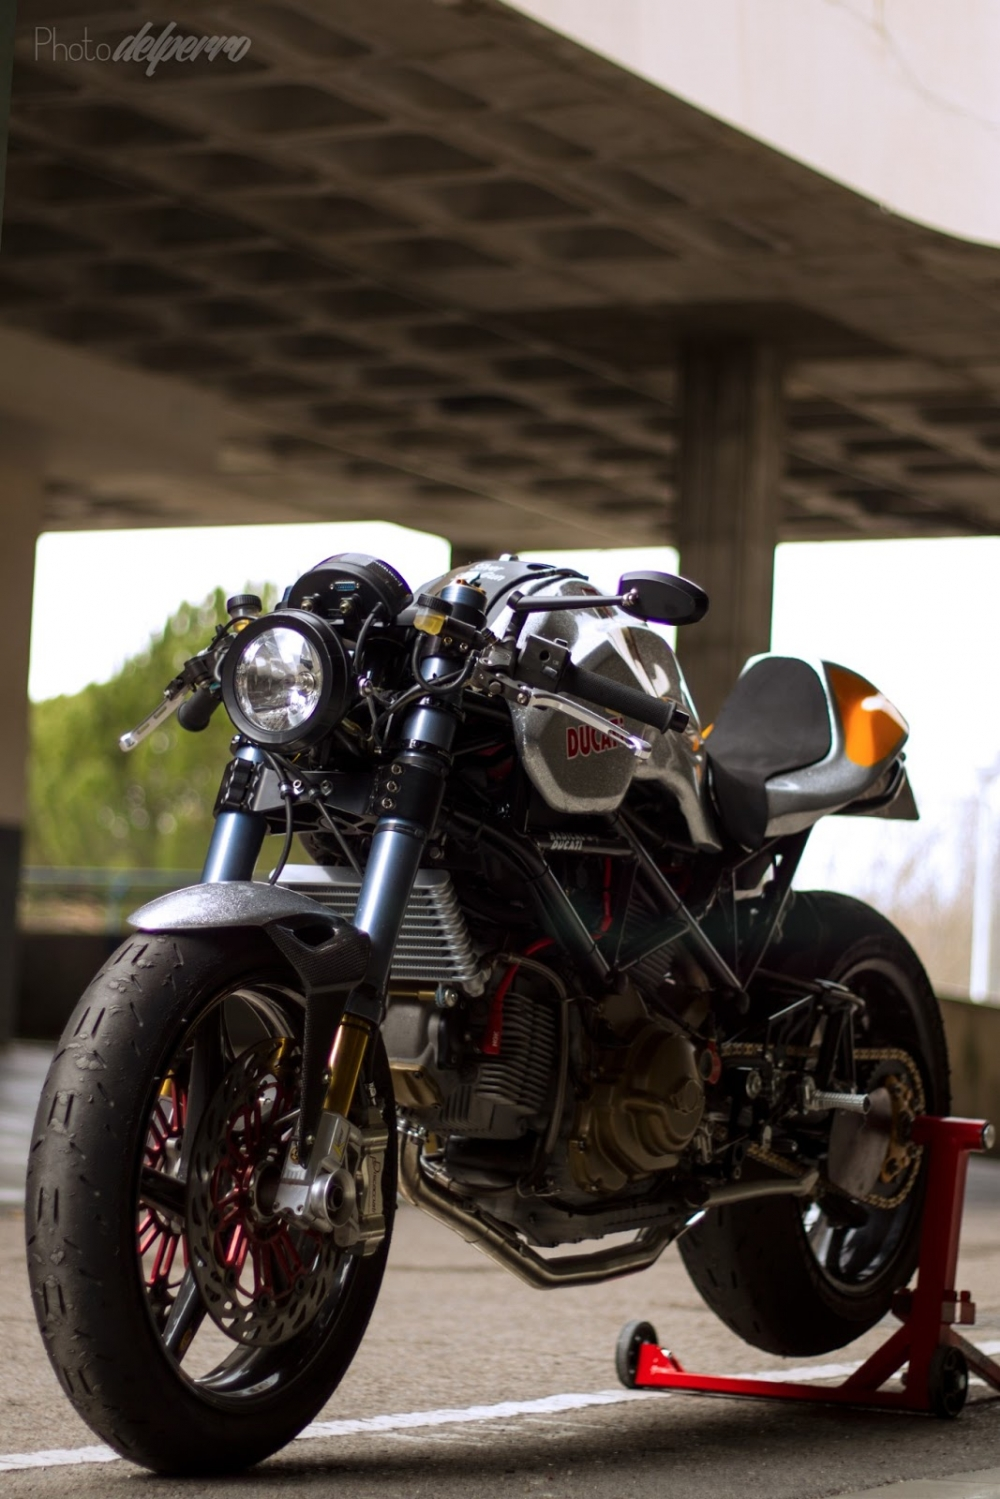 Ducati S2R 1000 do phong cach Cafe Racer - 7